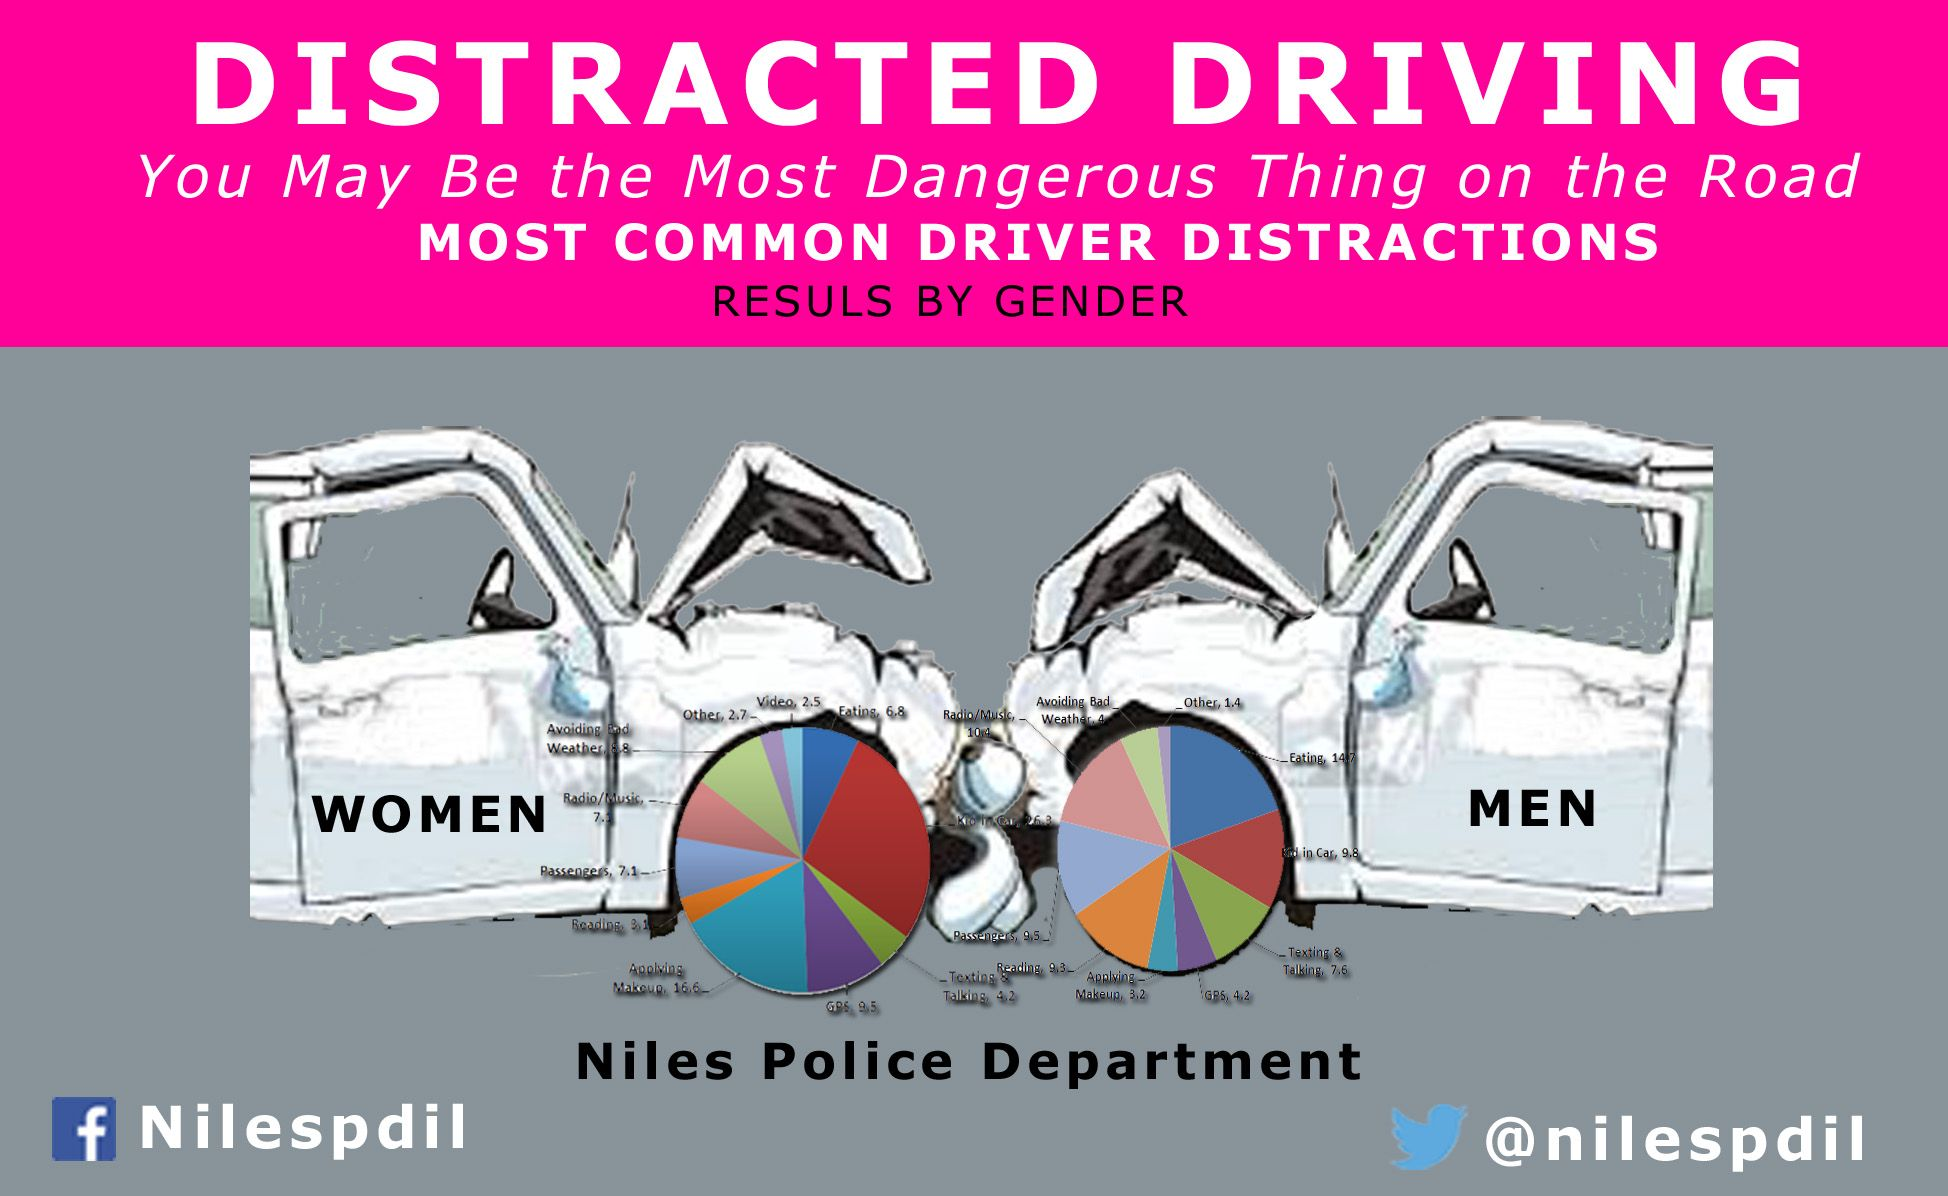 Distracted driving distracted driving safety message